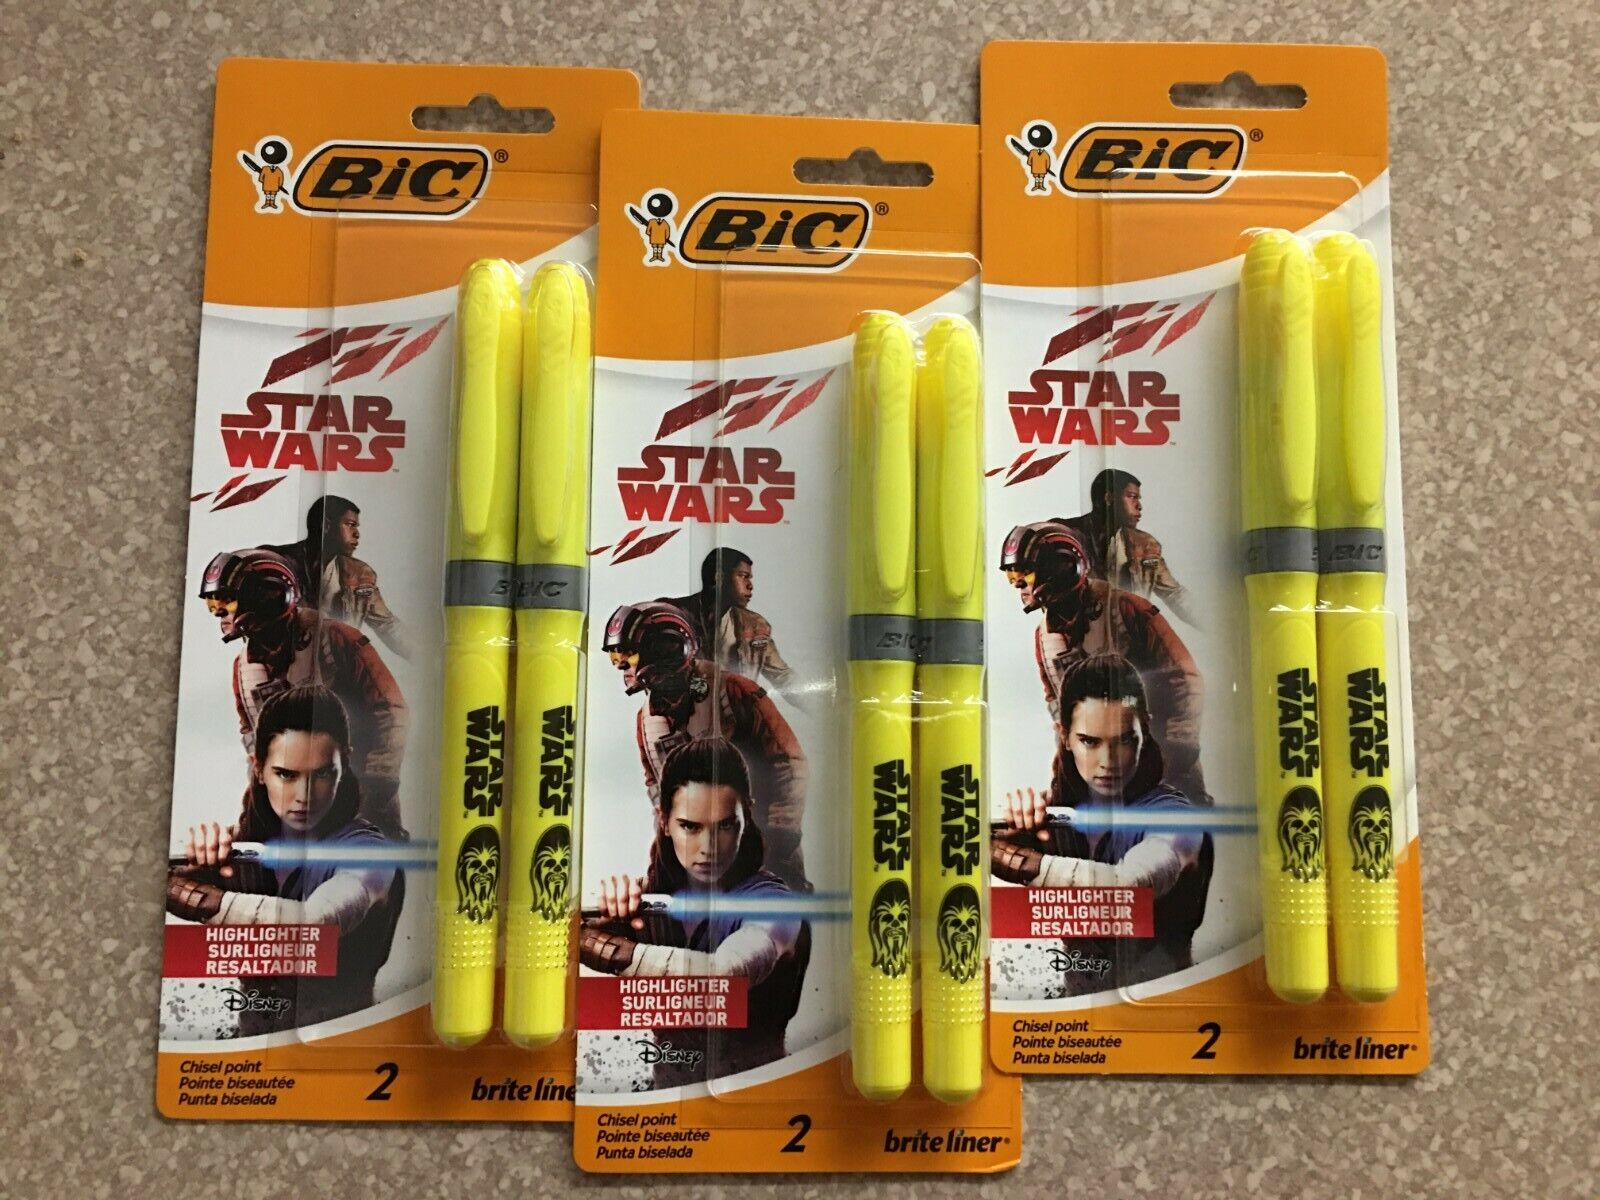 NIB Bic Star Wars Highlighters 2 Pack/Lot of 3 Yellow/Total